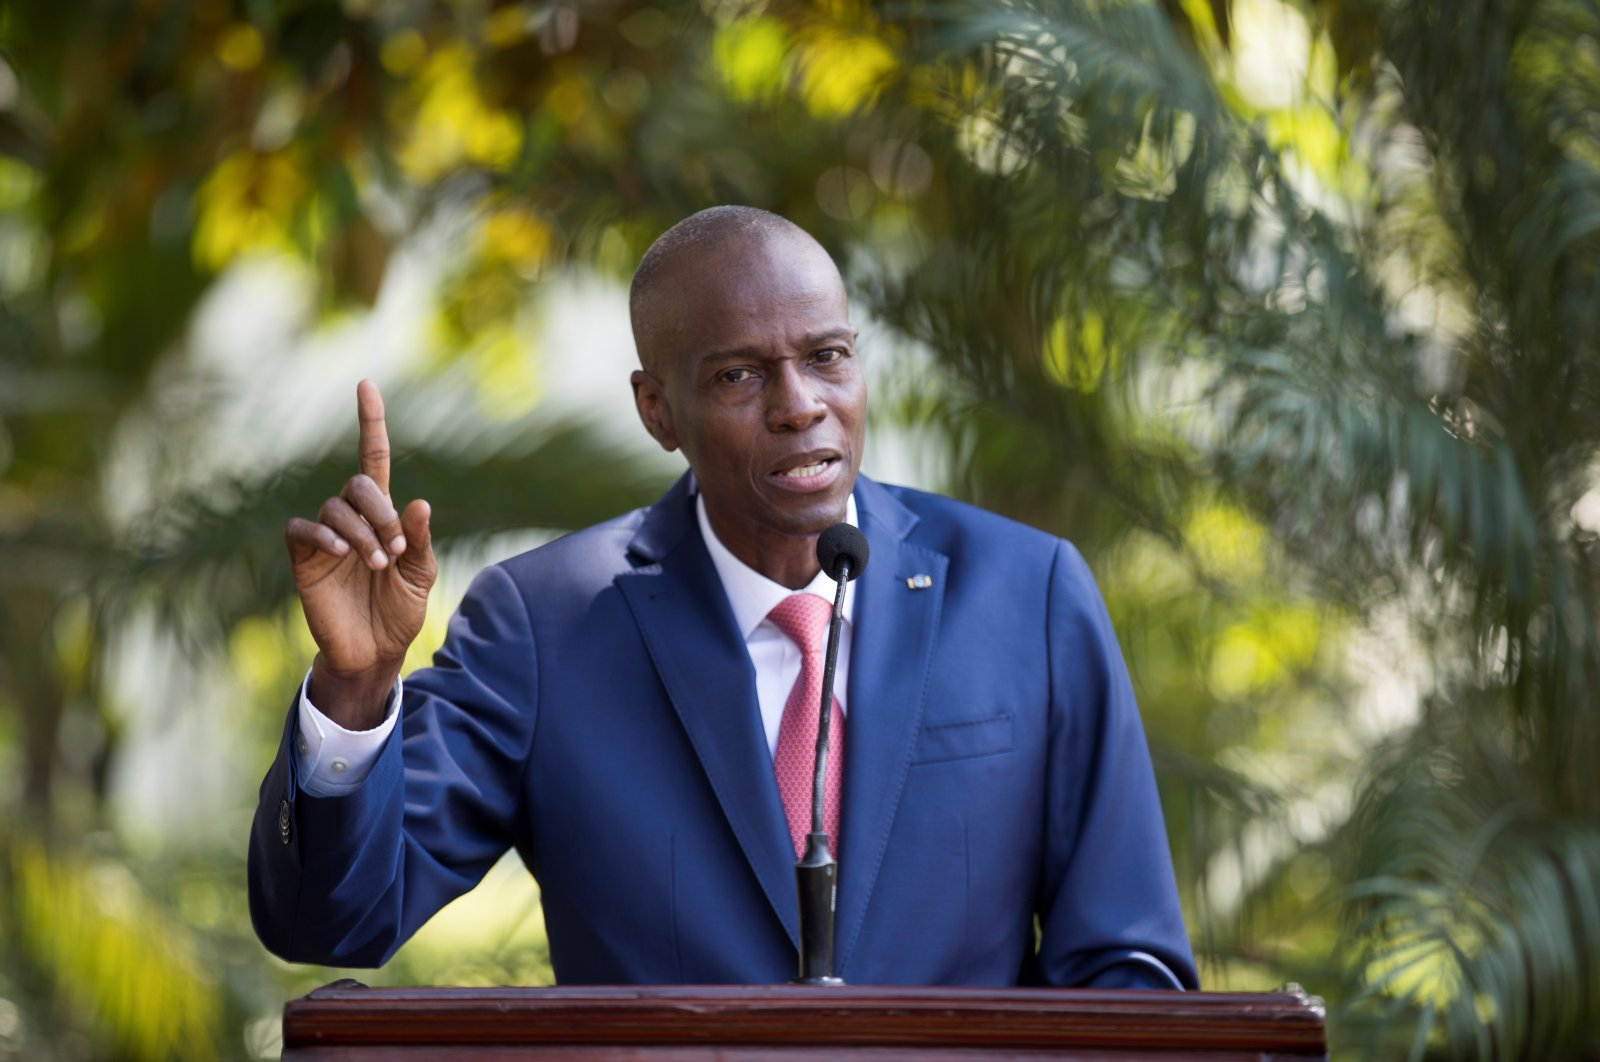 Late Haitian President Jovenel Moise speaks to the press in the gardens of the National Palace, in Port-au-Prince, Haiti, Oct. 15, 2019. (EPA Photo)